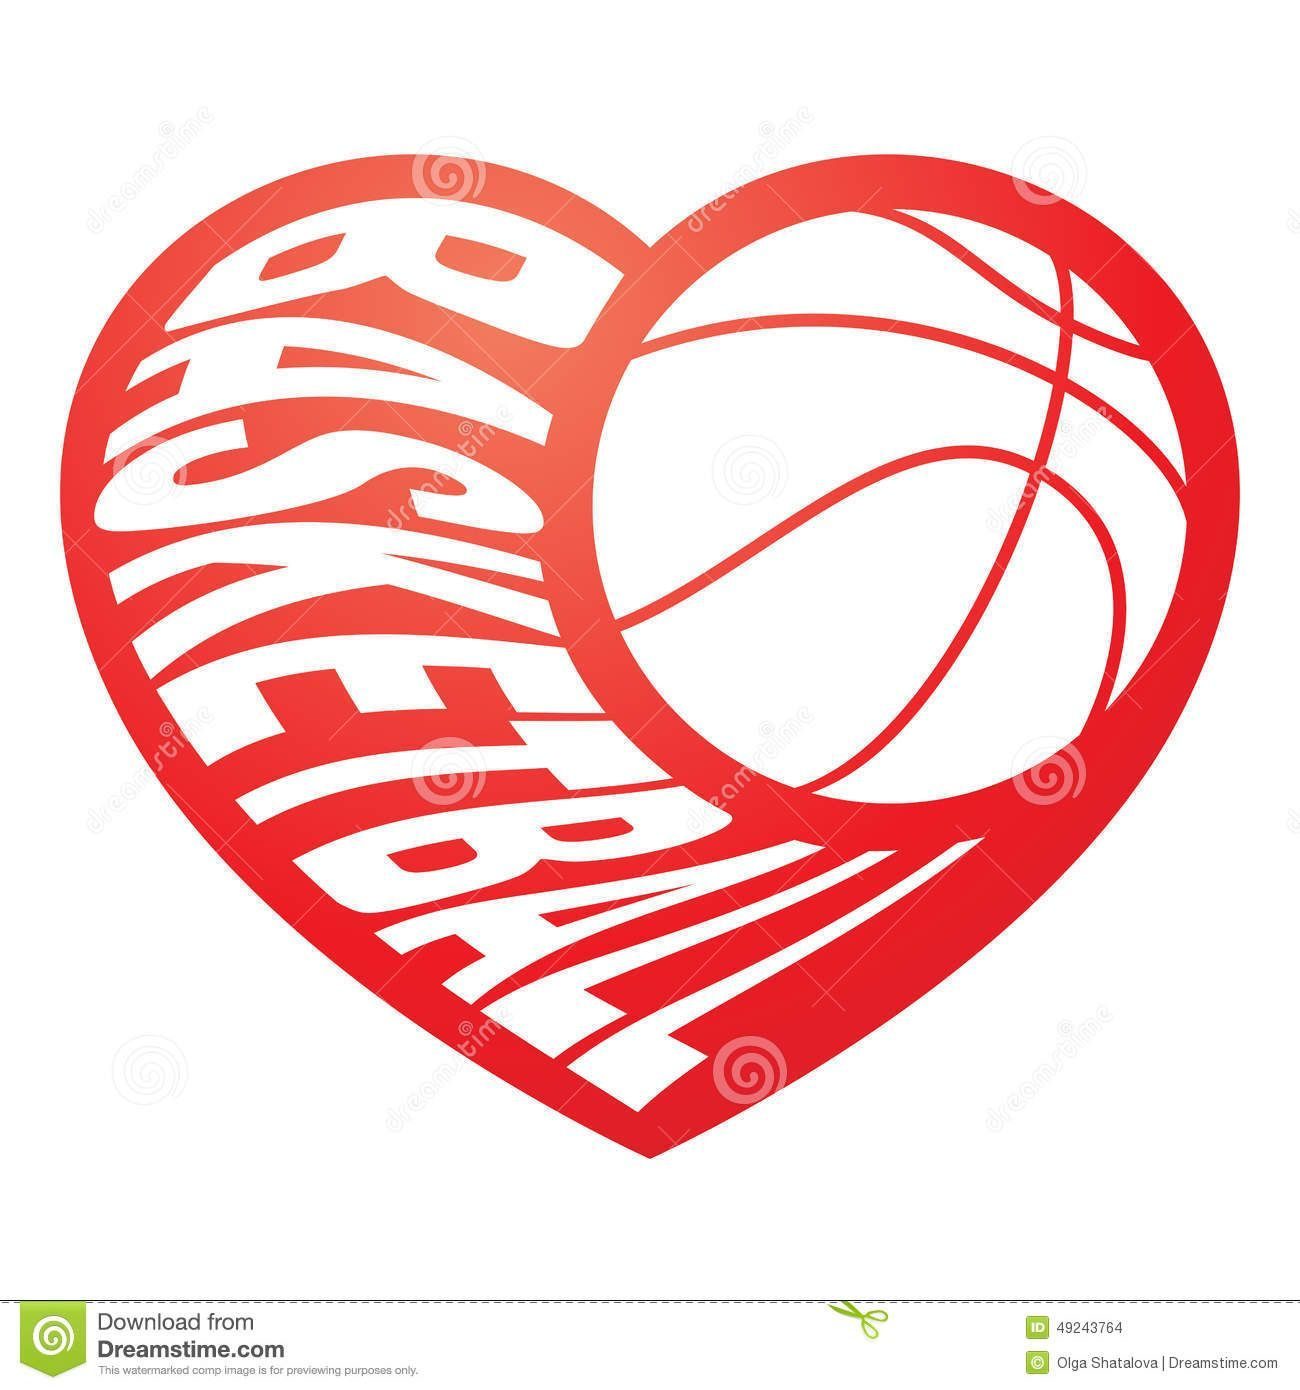 Basketball heart clipart black and white 3 » Clipart Portal.